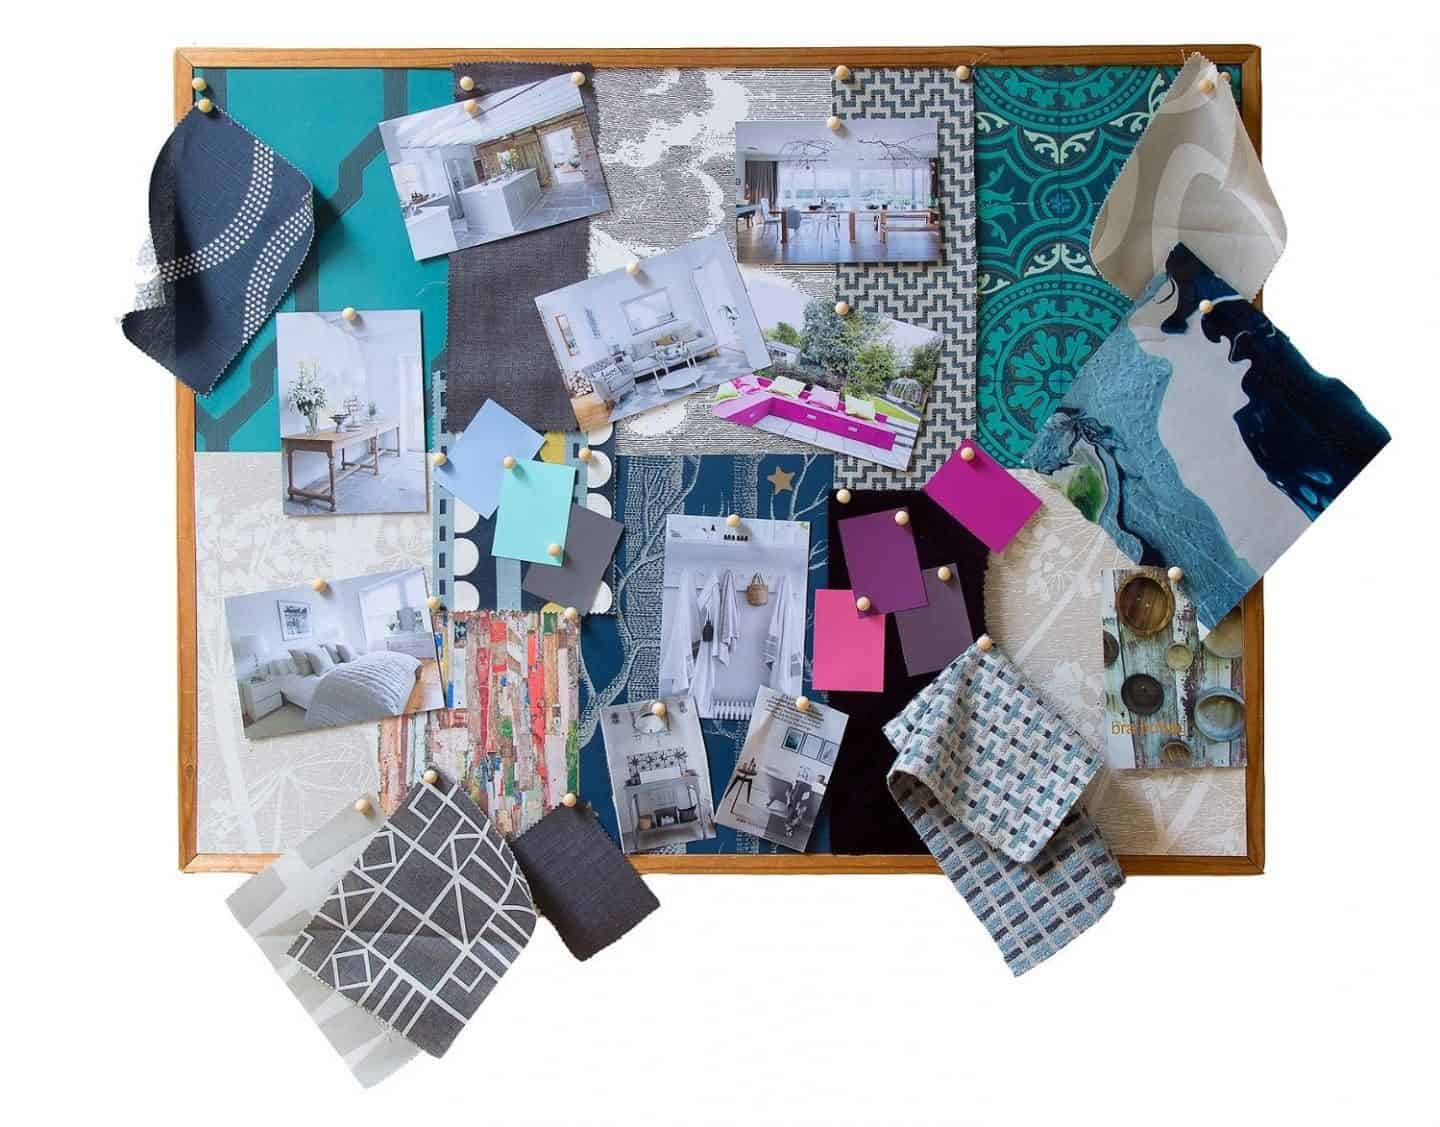 Alison Gibb Inventor of the Interior Design Toolkit - Mood Board